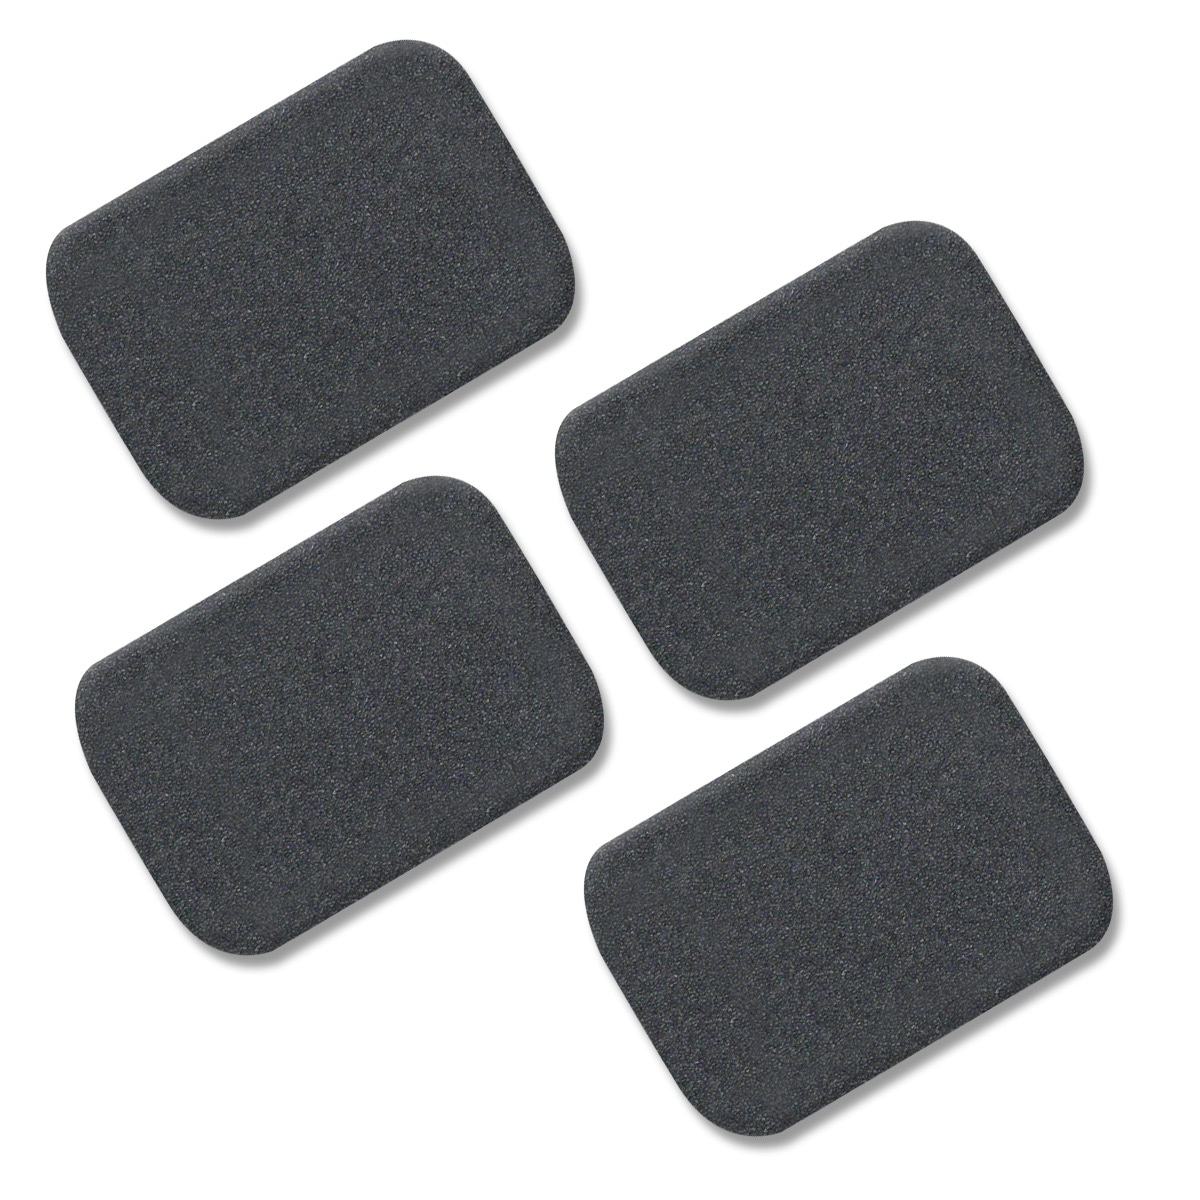 Reusable Foam Filters for IntelliPAP Series CPAP & BiPAP Machines - 4 Pack